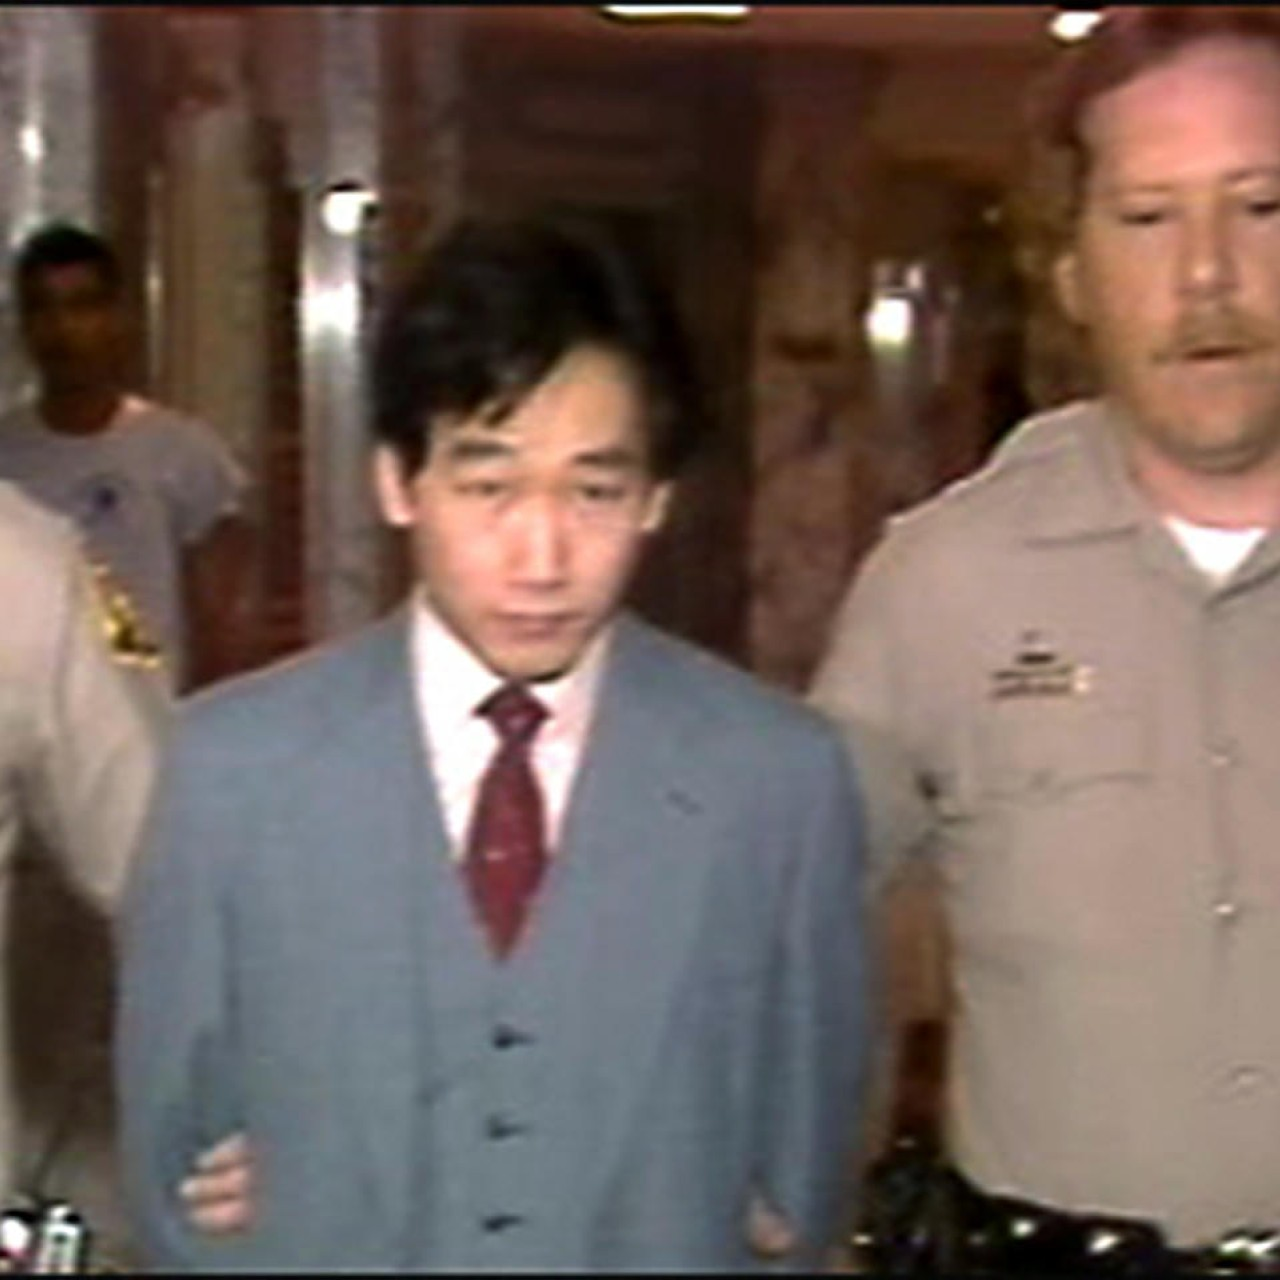 Tony Ng, jailed for 1983 Seattle massacre, to be deported to